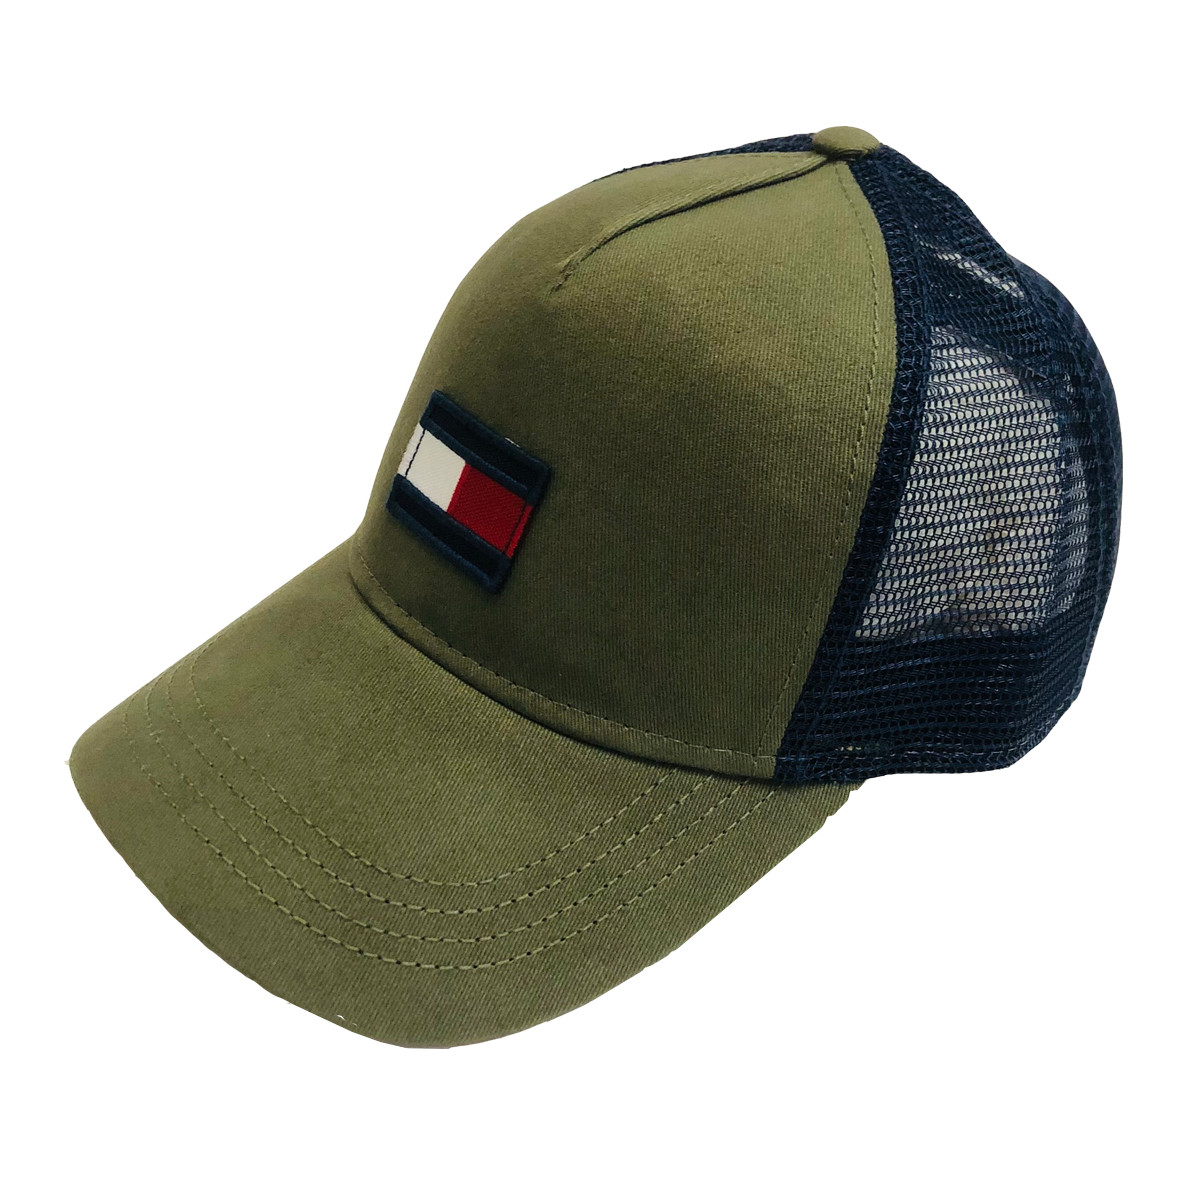 non-tommy-hilfiger-88